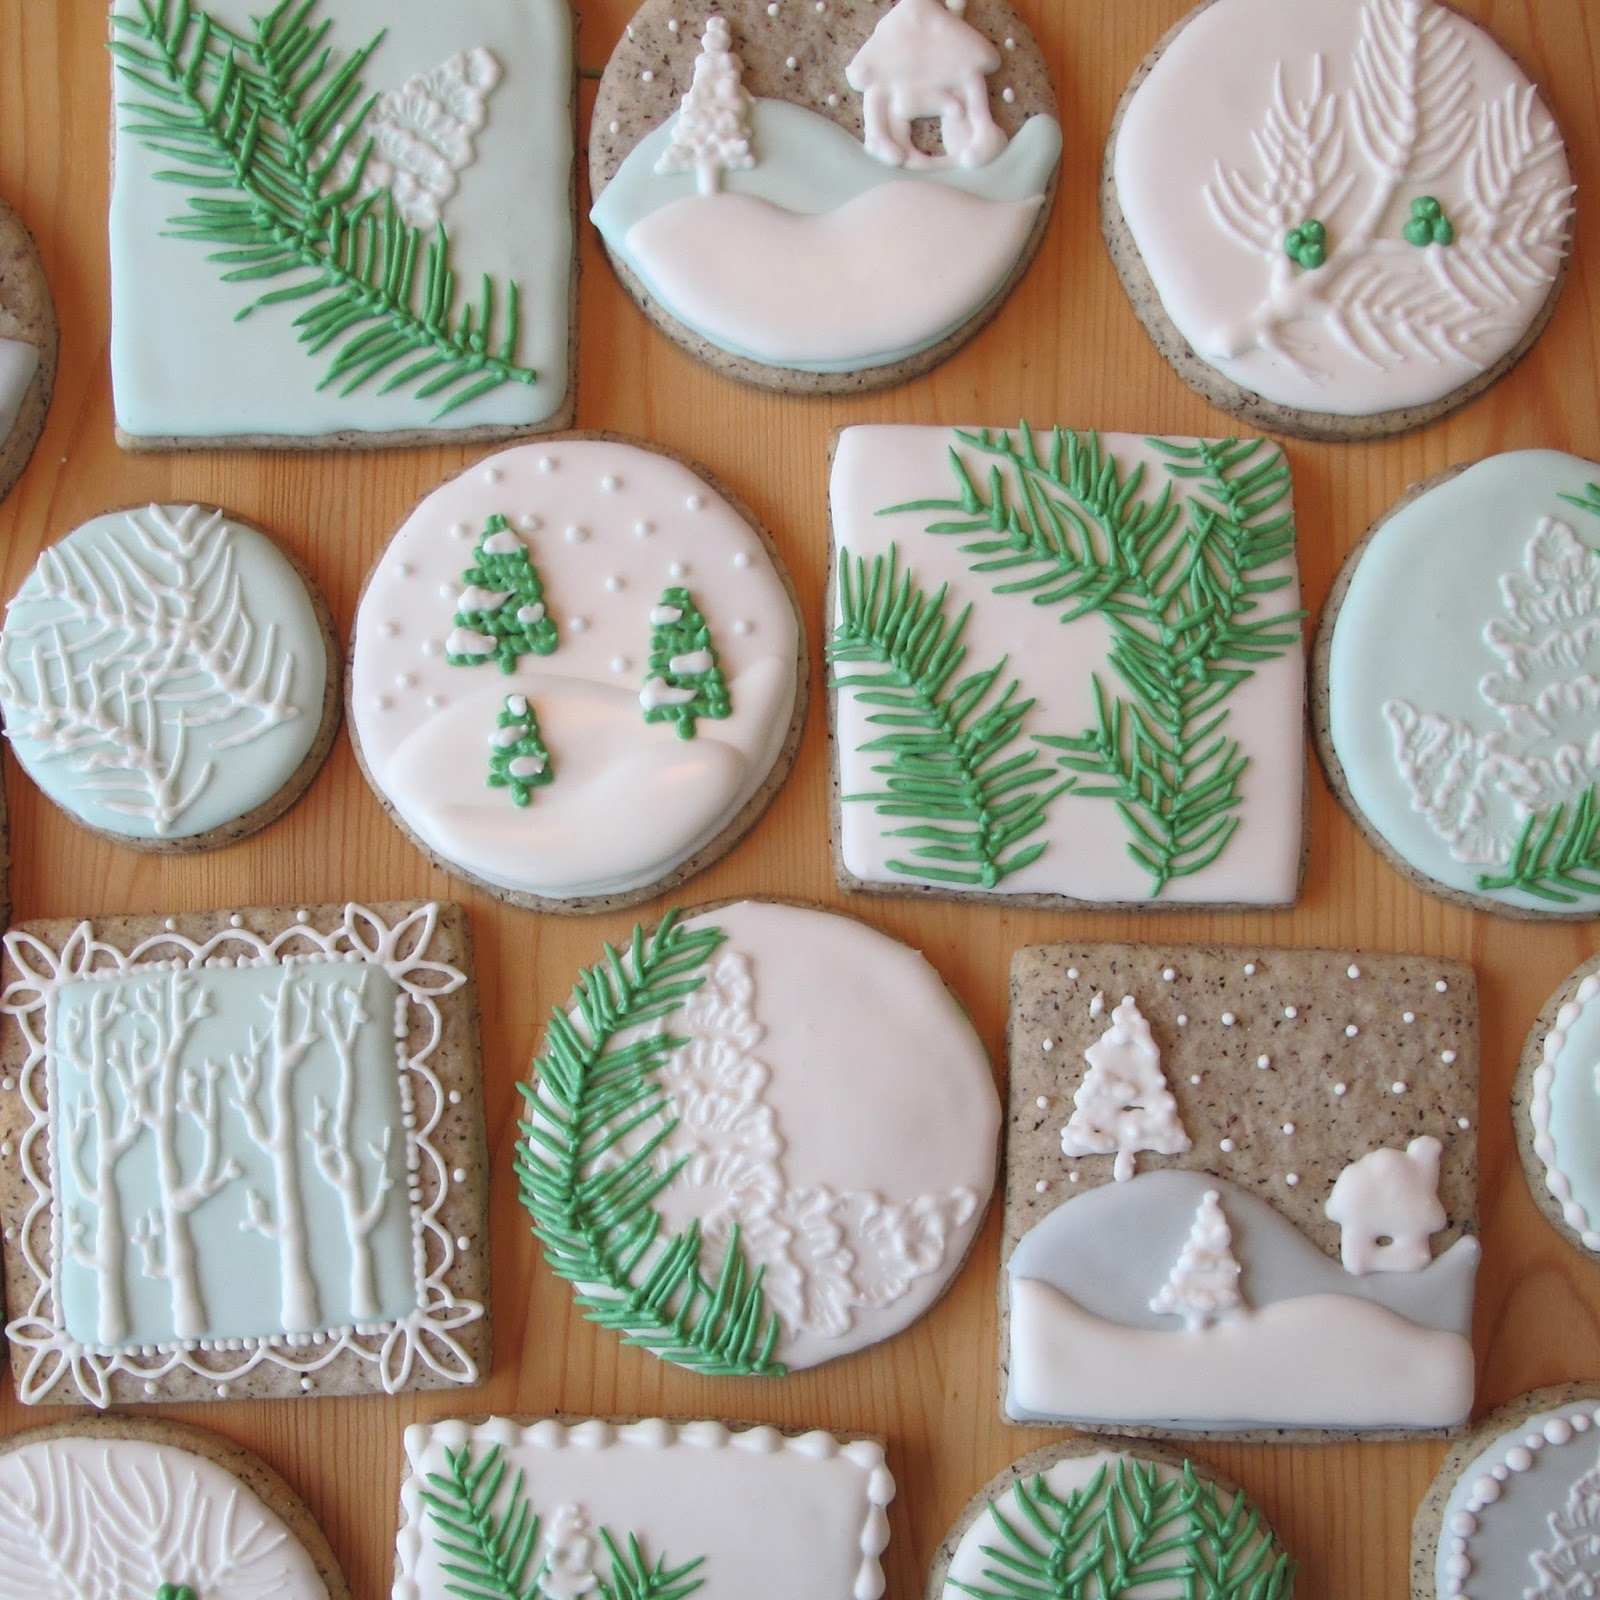 Fine Motor Skills Winter Cookies Sugar Cookie Royal Icing Recipes